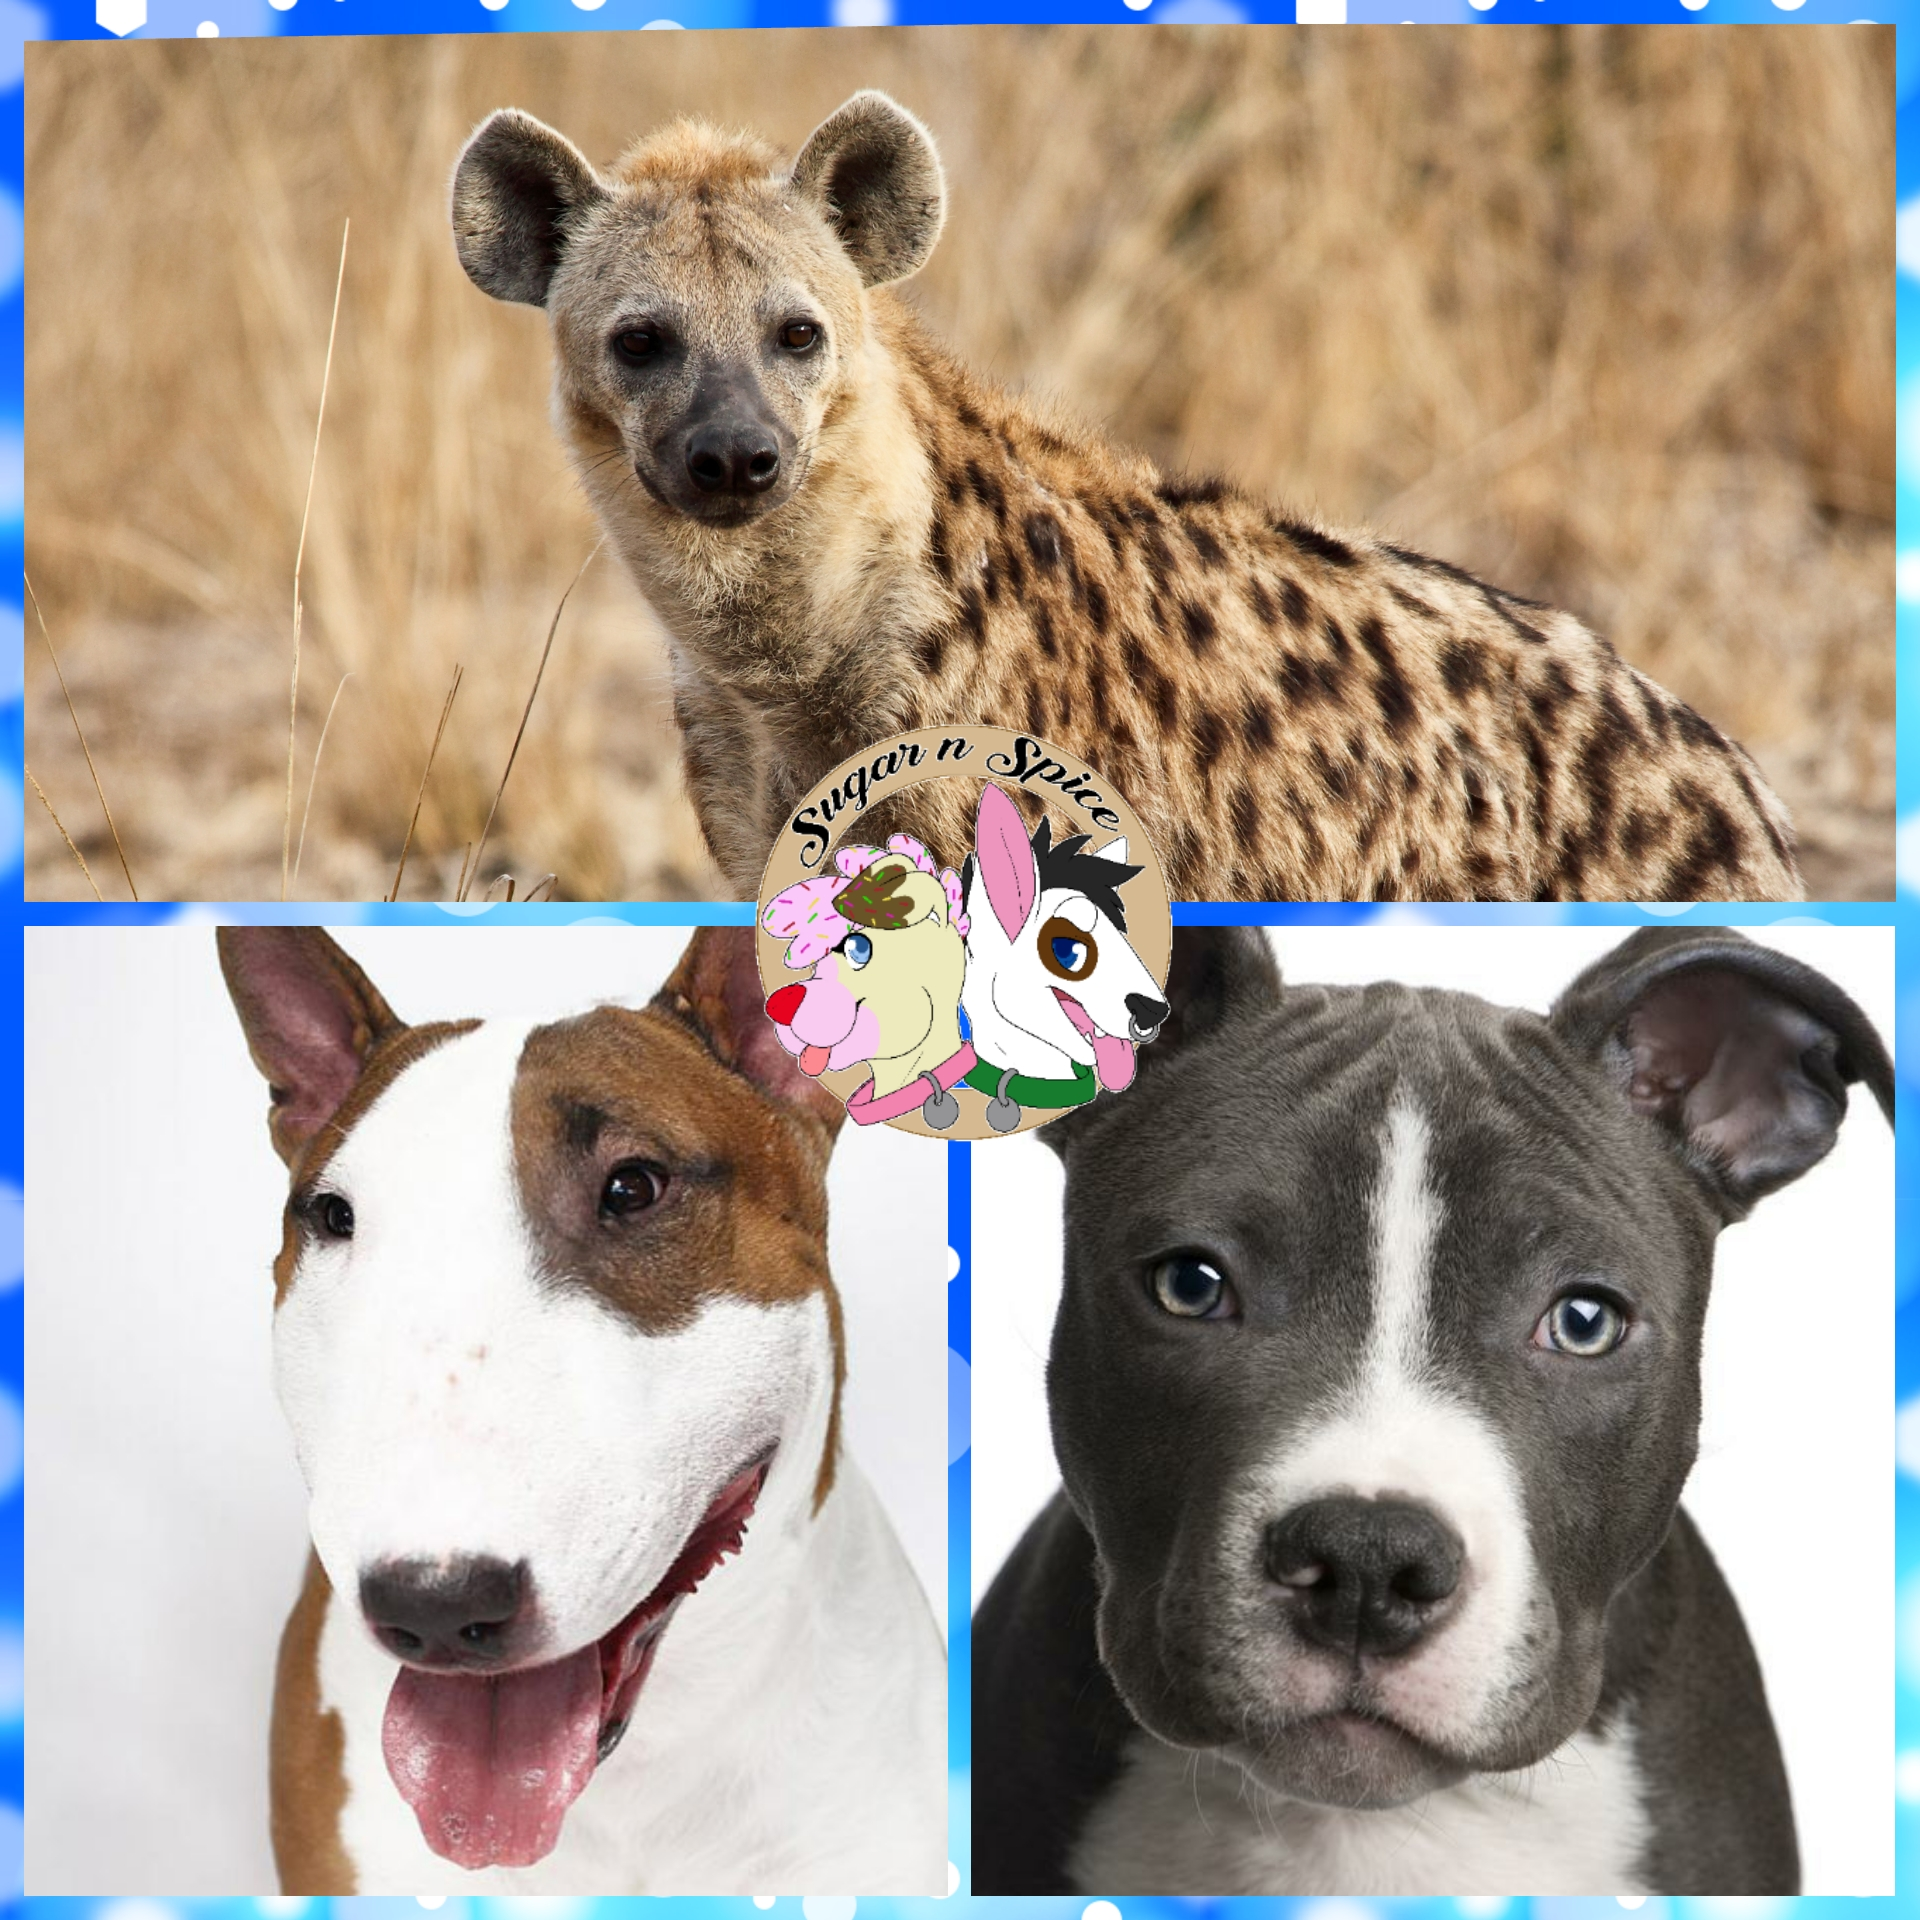 Discounted Species Commisions  - Hyenas,English Bull terriers ,Pit bulls These species are our favorites to make so you thecustomer benefit from our love of these breeds/species.